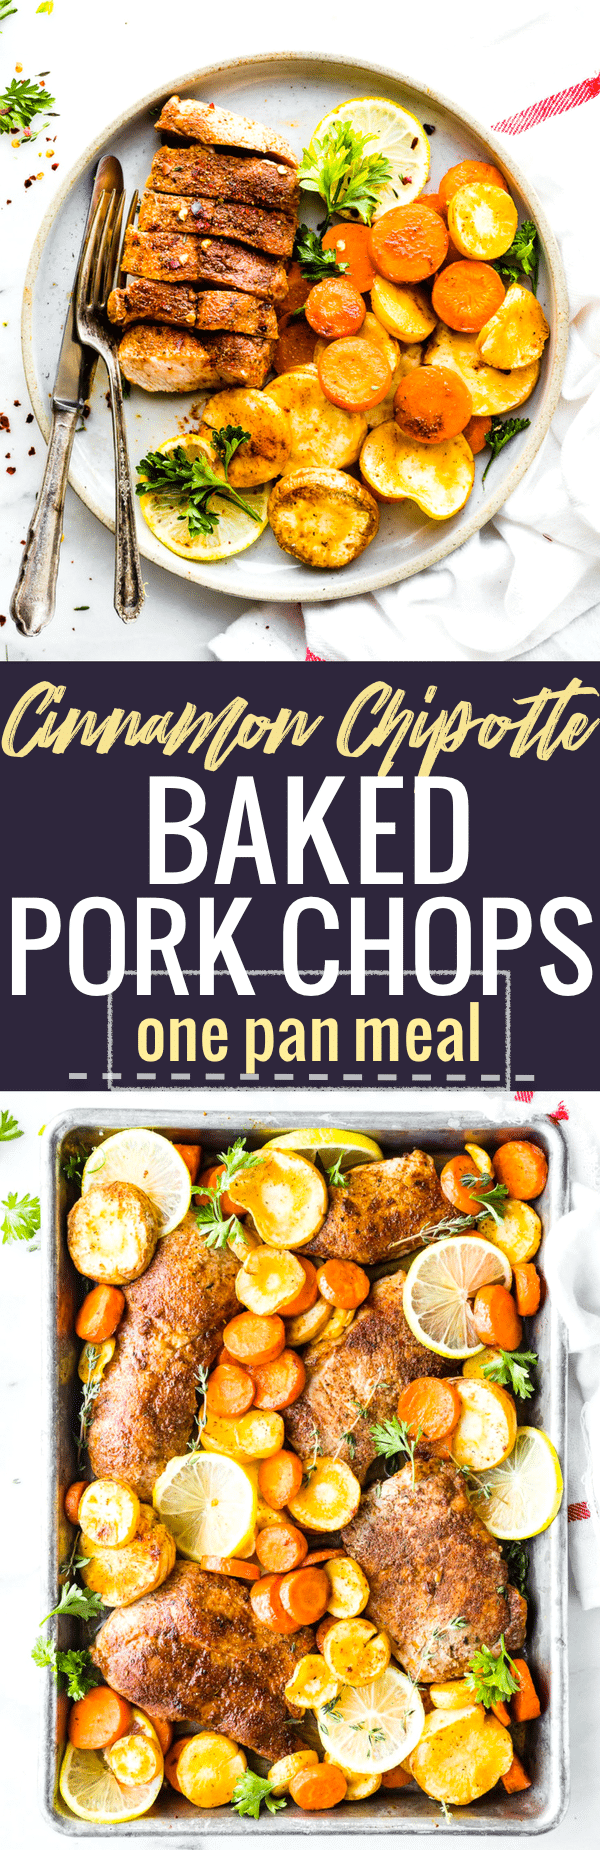 This Cinnamon Chipotle Baked Pork Chops with parsnips and carrots makes an easy one pan meal. Boneless baked pork chops rubbed in a sweet smokey seasoning, roasted veggies, and herbs to garnish. A paleo meal ready in 30 minutes. www.cottercrunch.com #paleo #quickrecipe #healthy #sheetpan